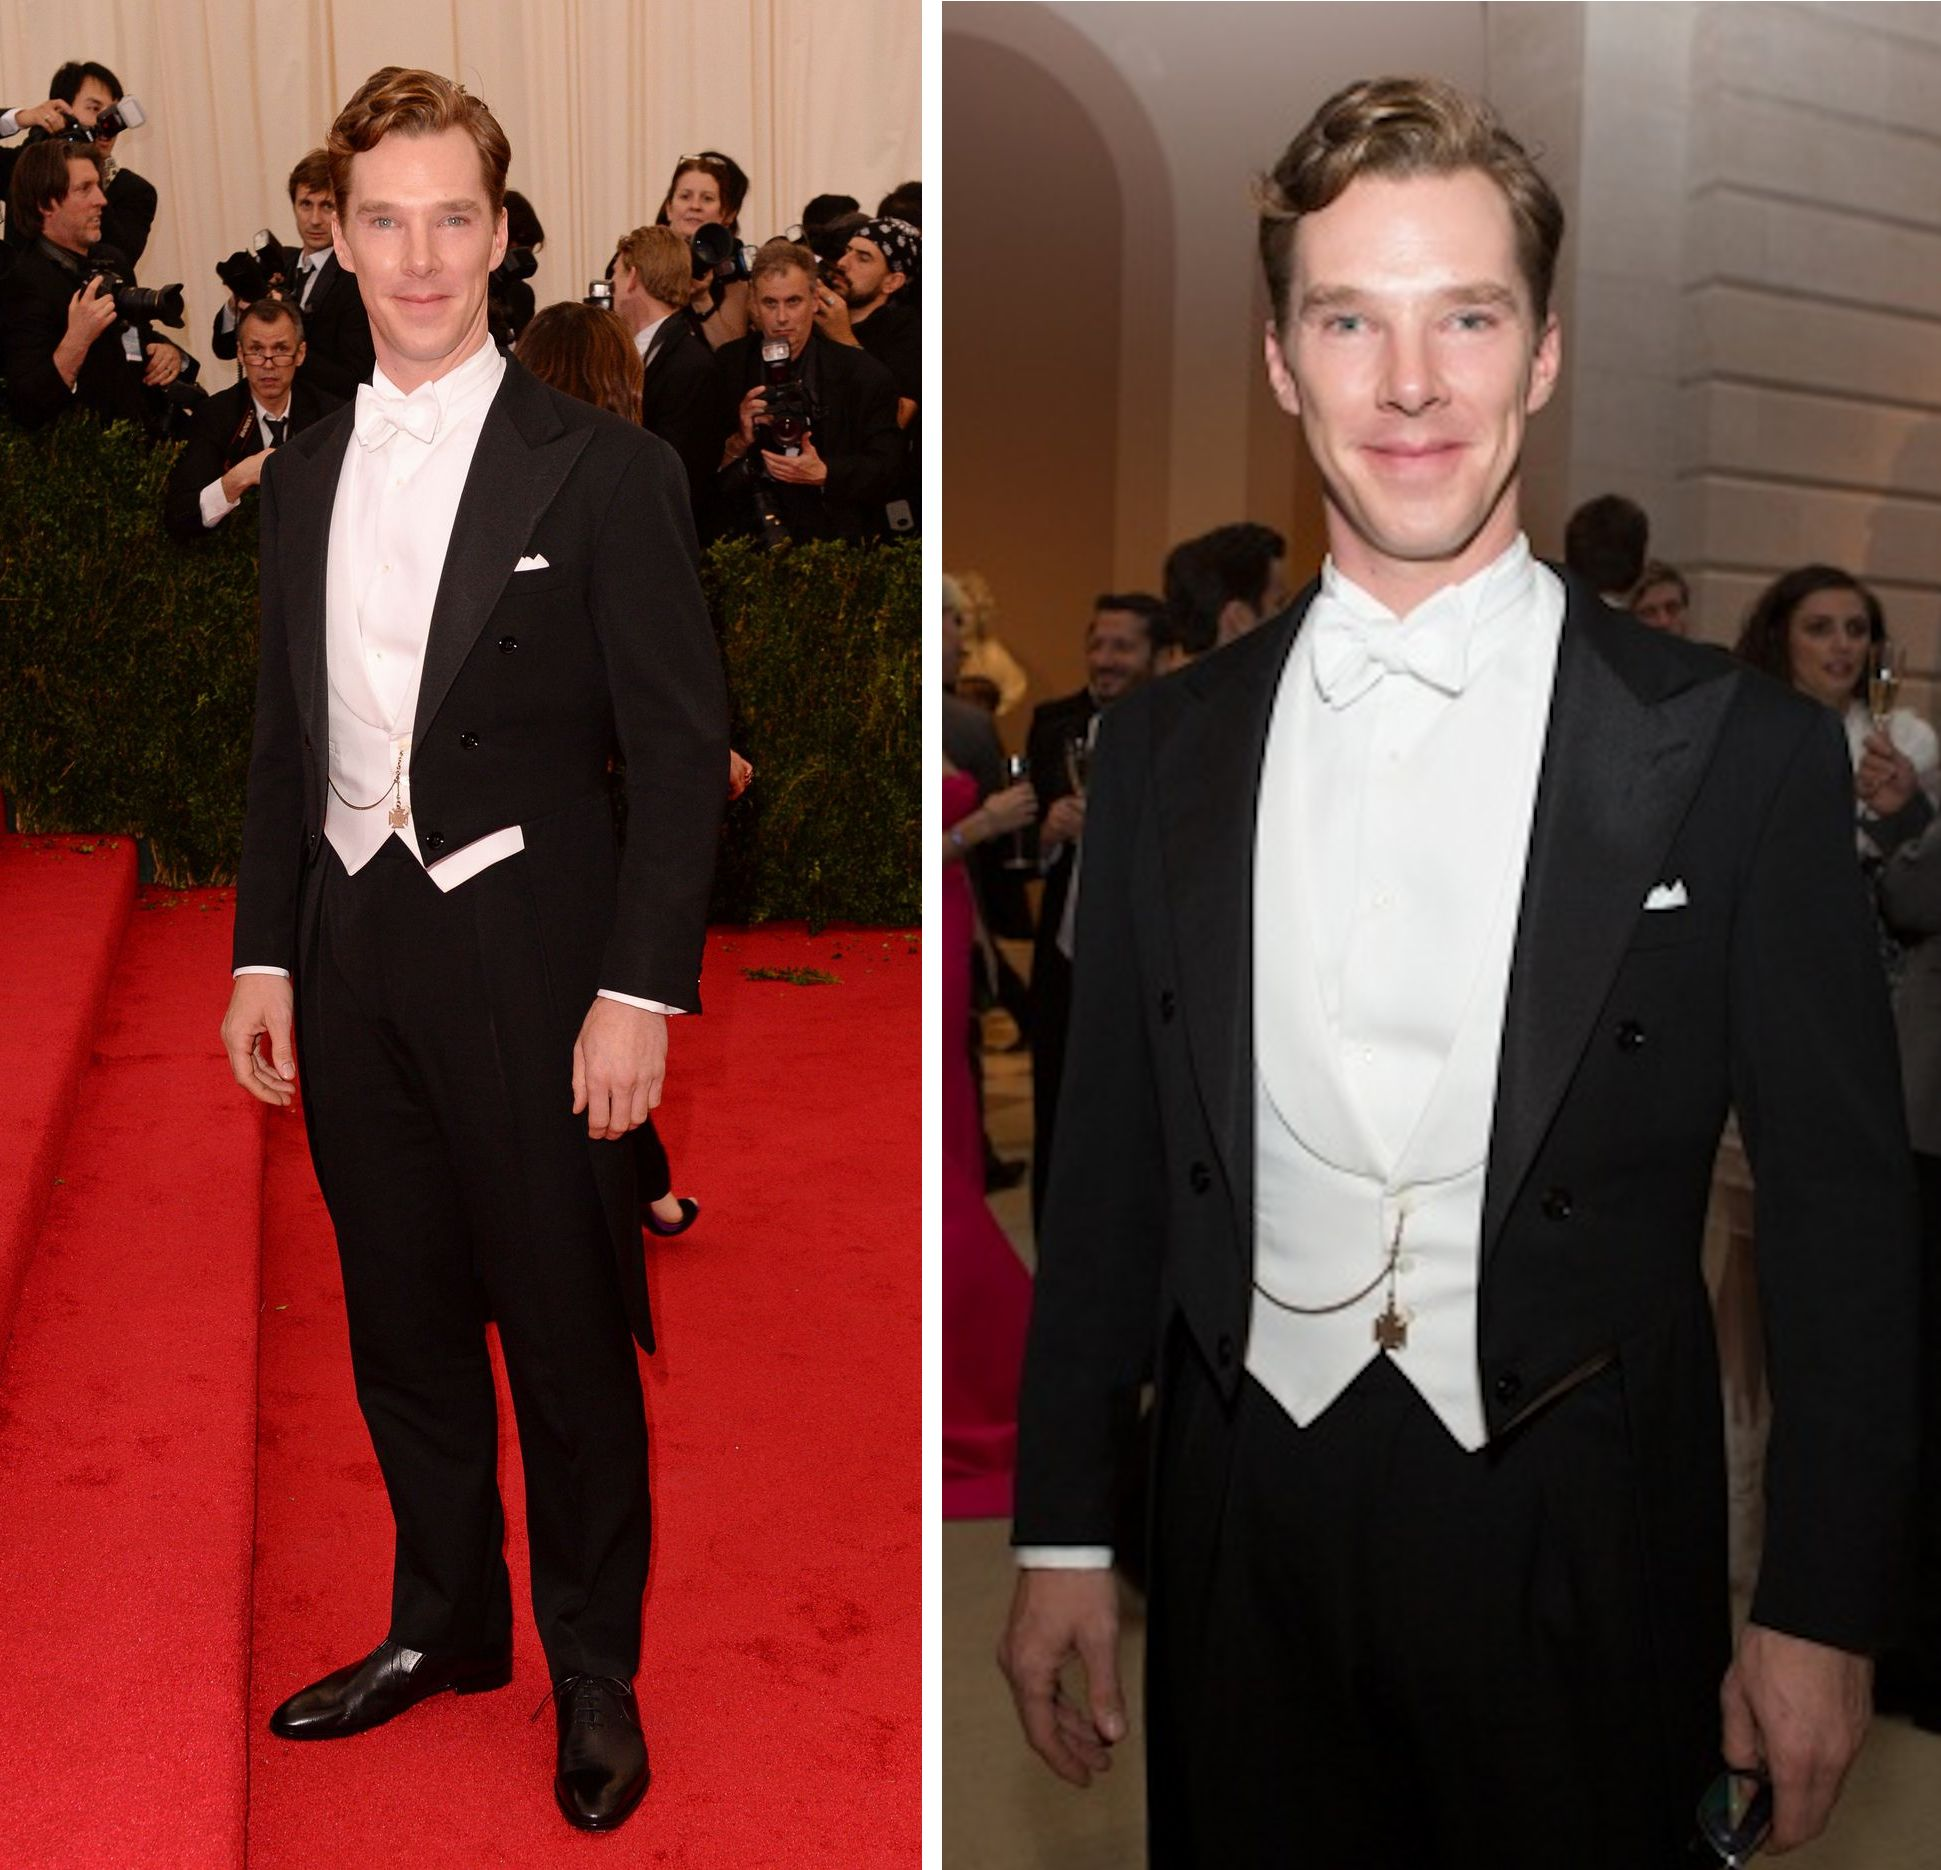 actor benedict cumberbatchs was technically the correct length but not constructed well enough to remain properly